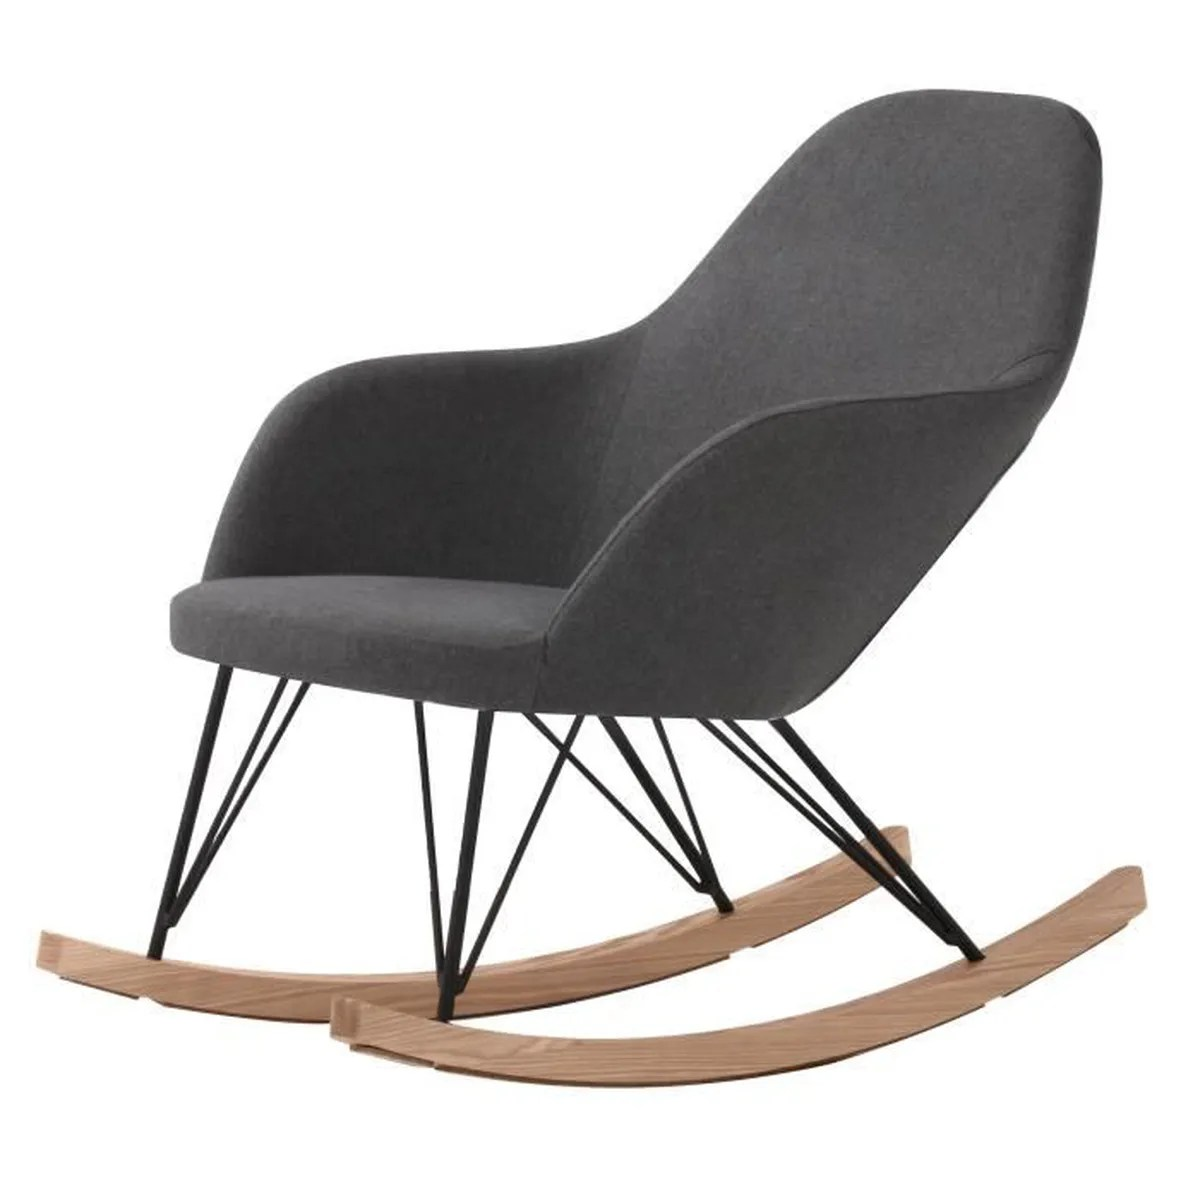 Fauteuils Rocking Chair Rocking Chair Malibu Gris Achat Vente Fauteuil Gris